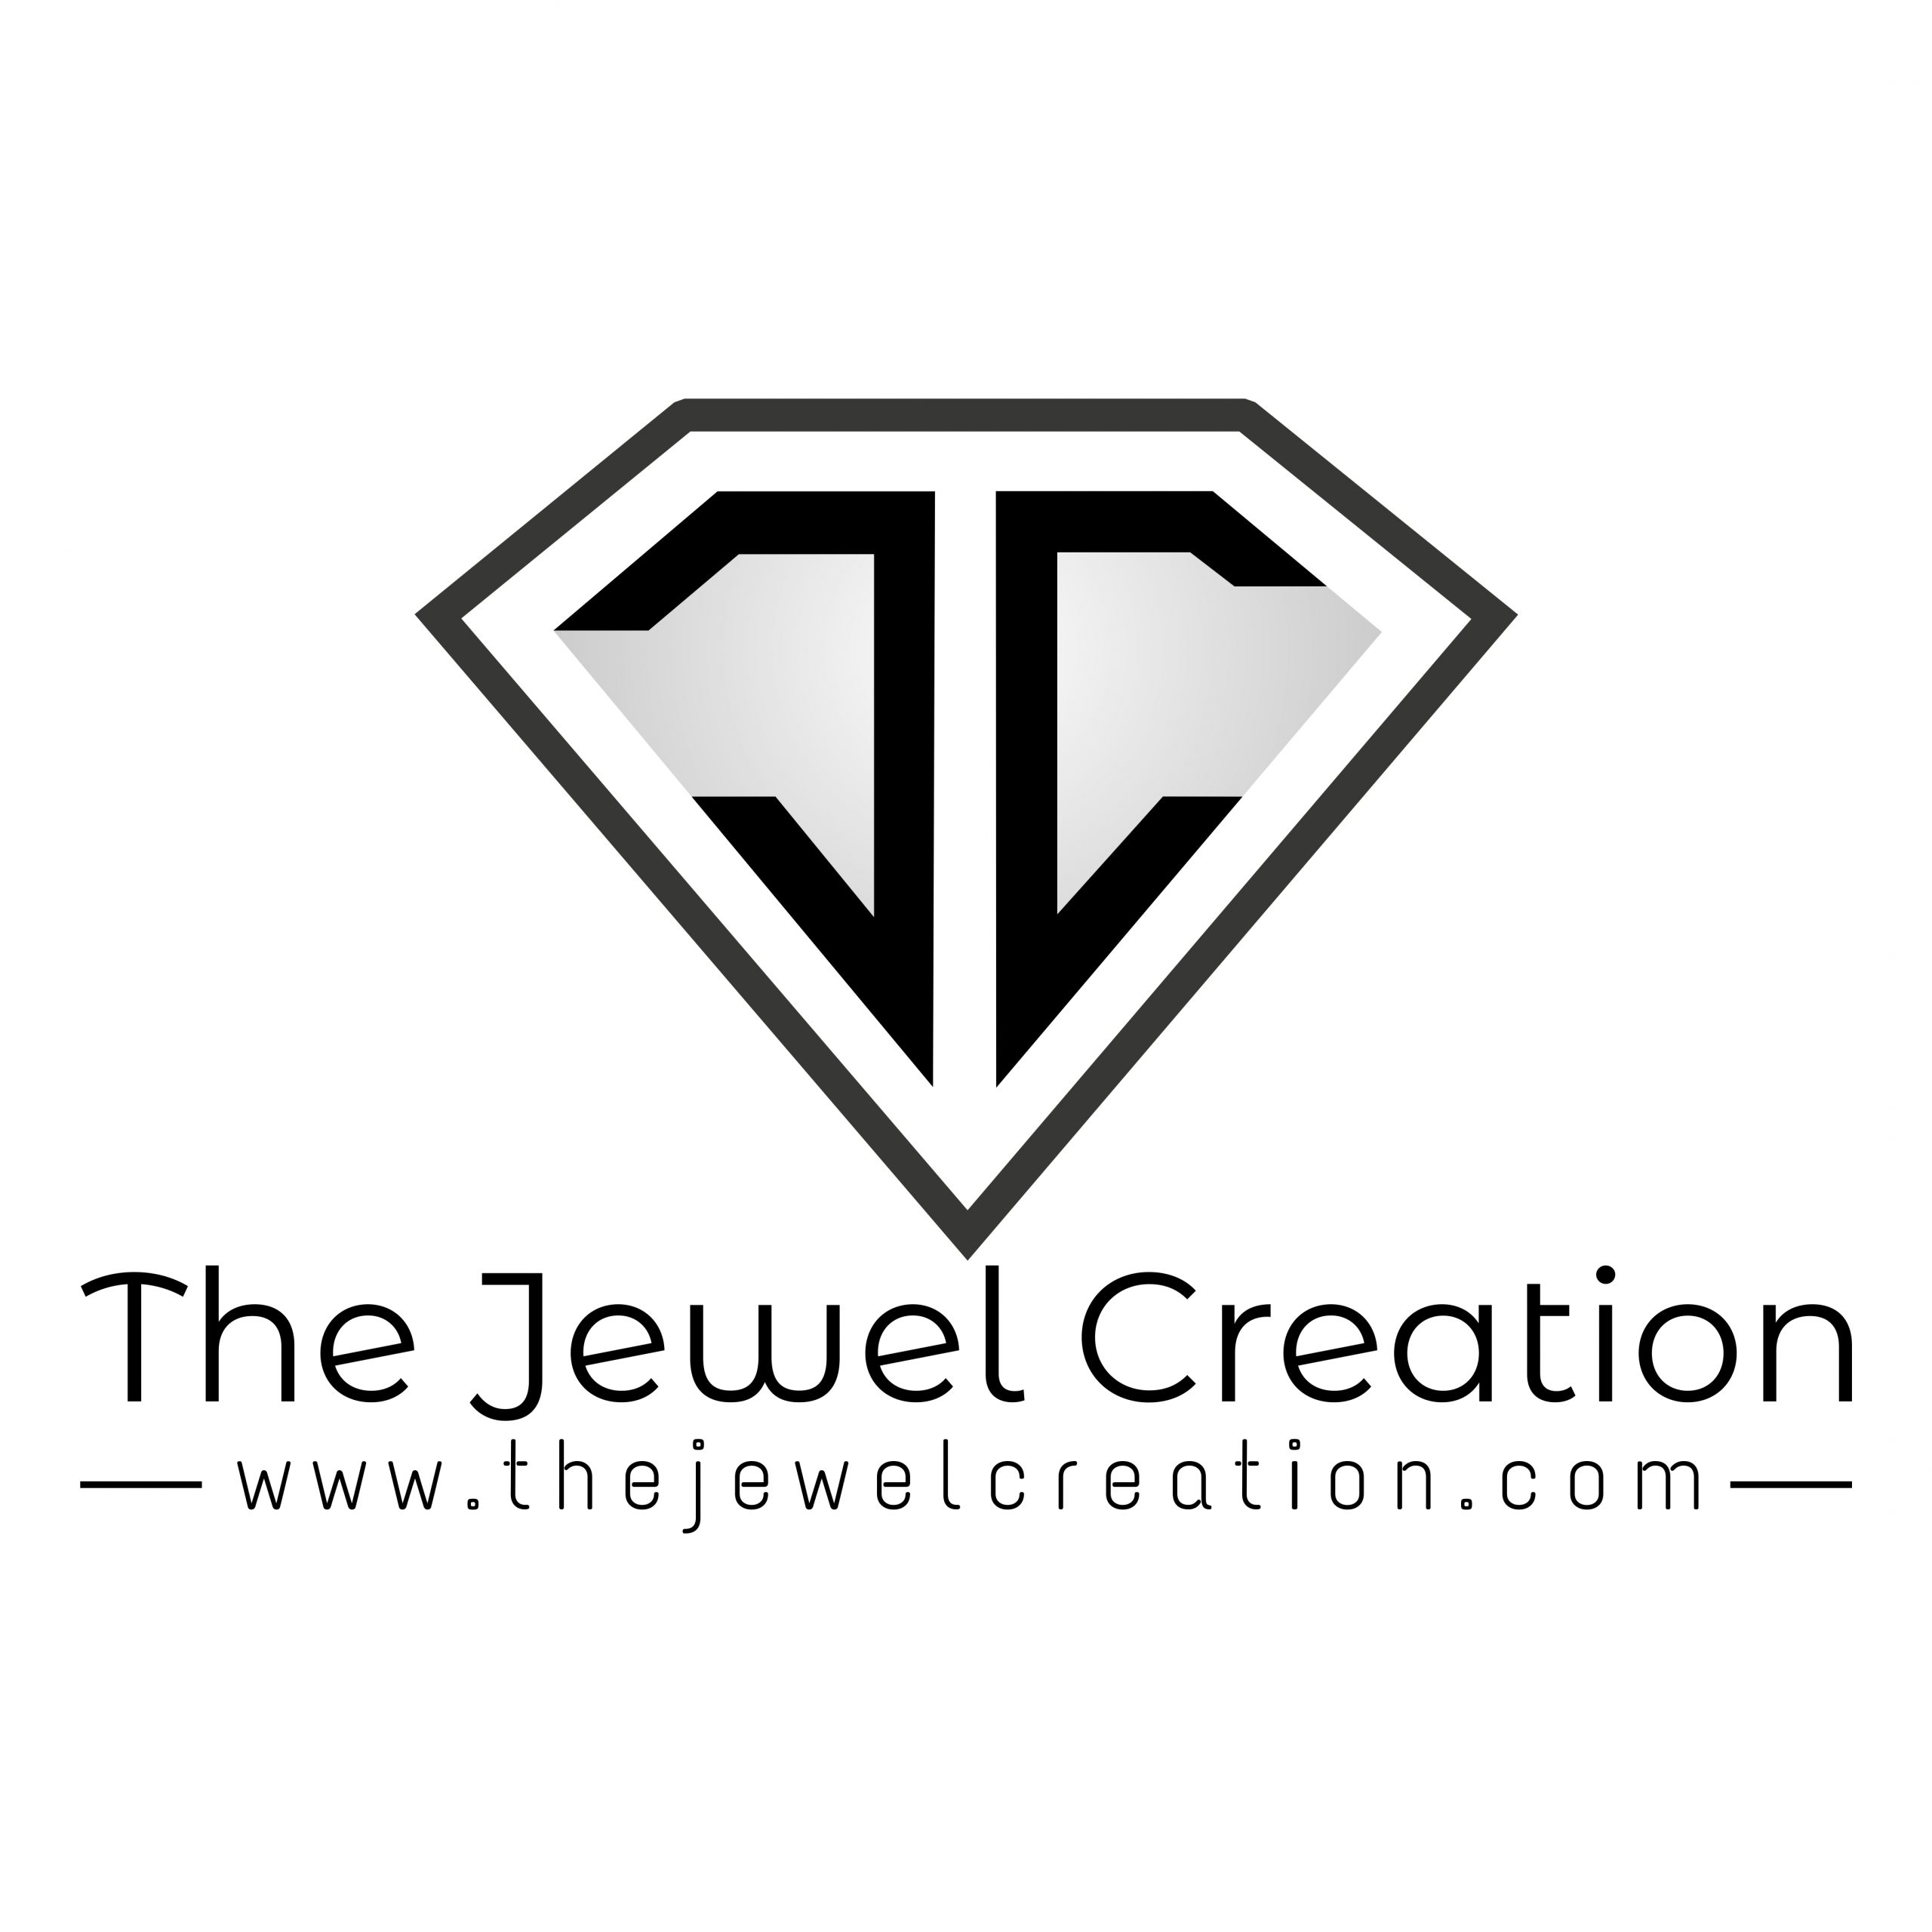 The Jewel Creation